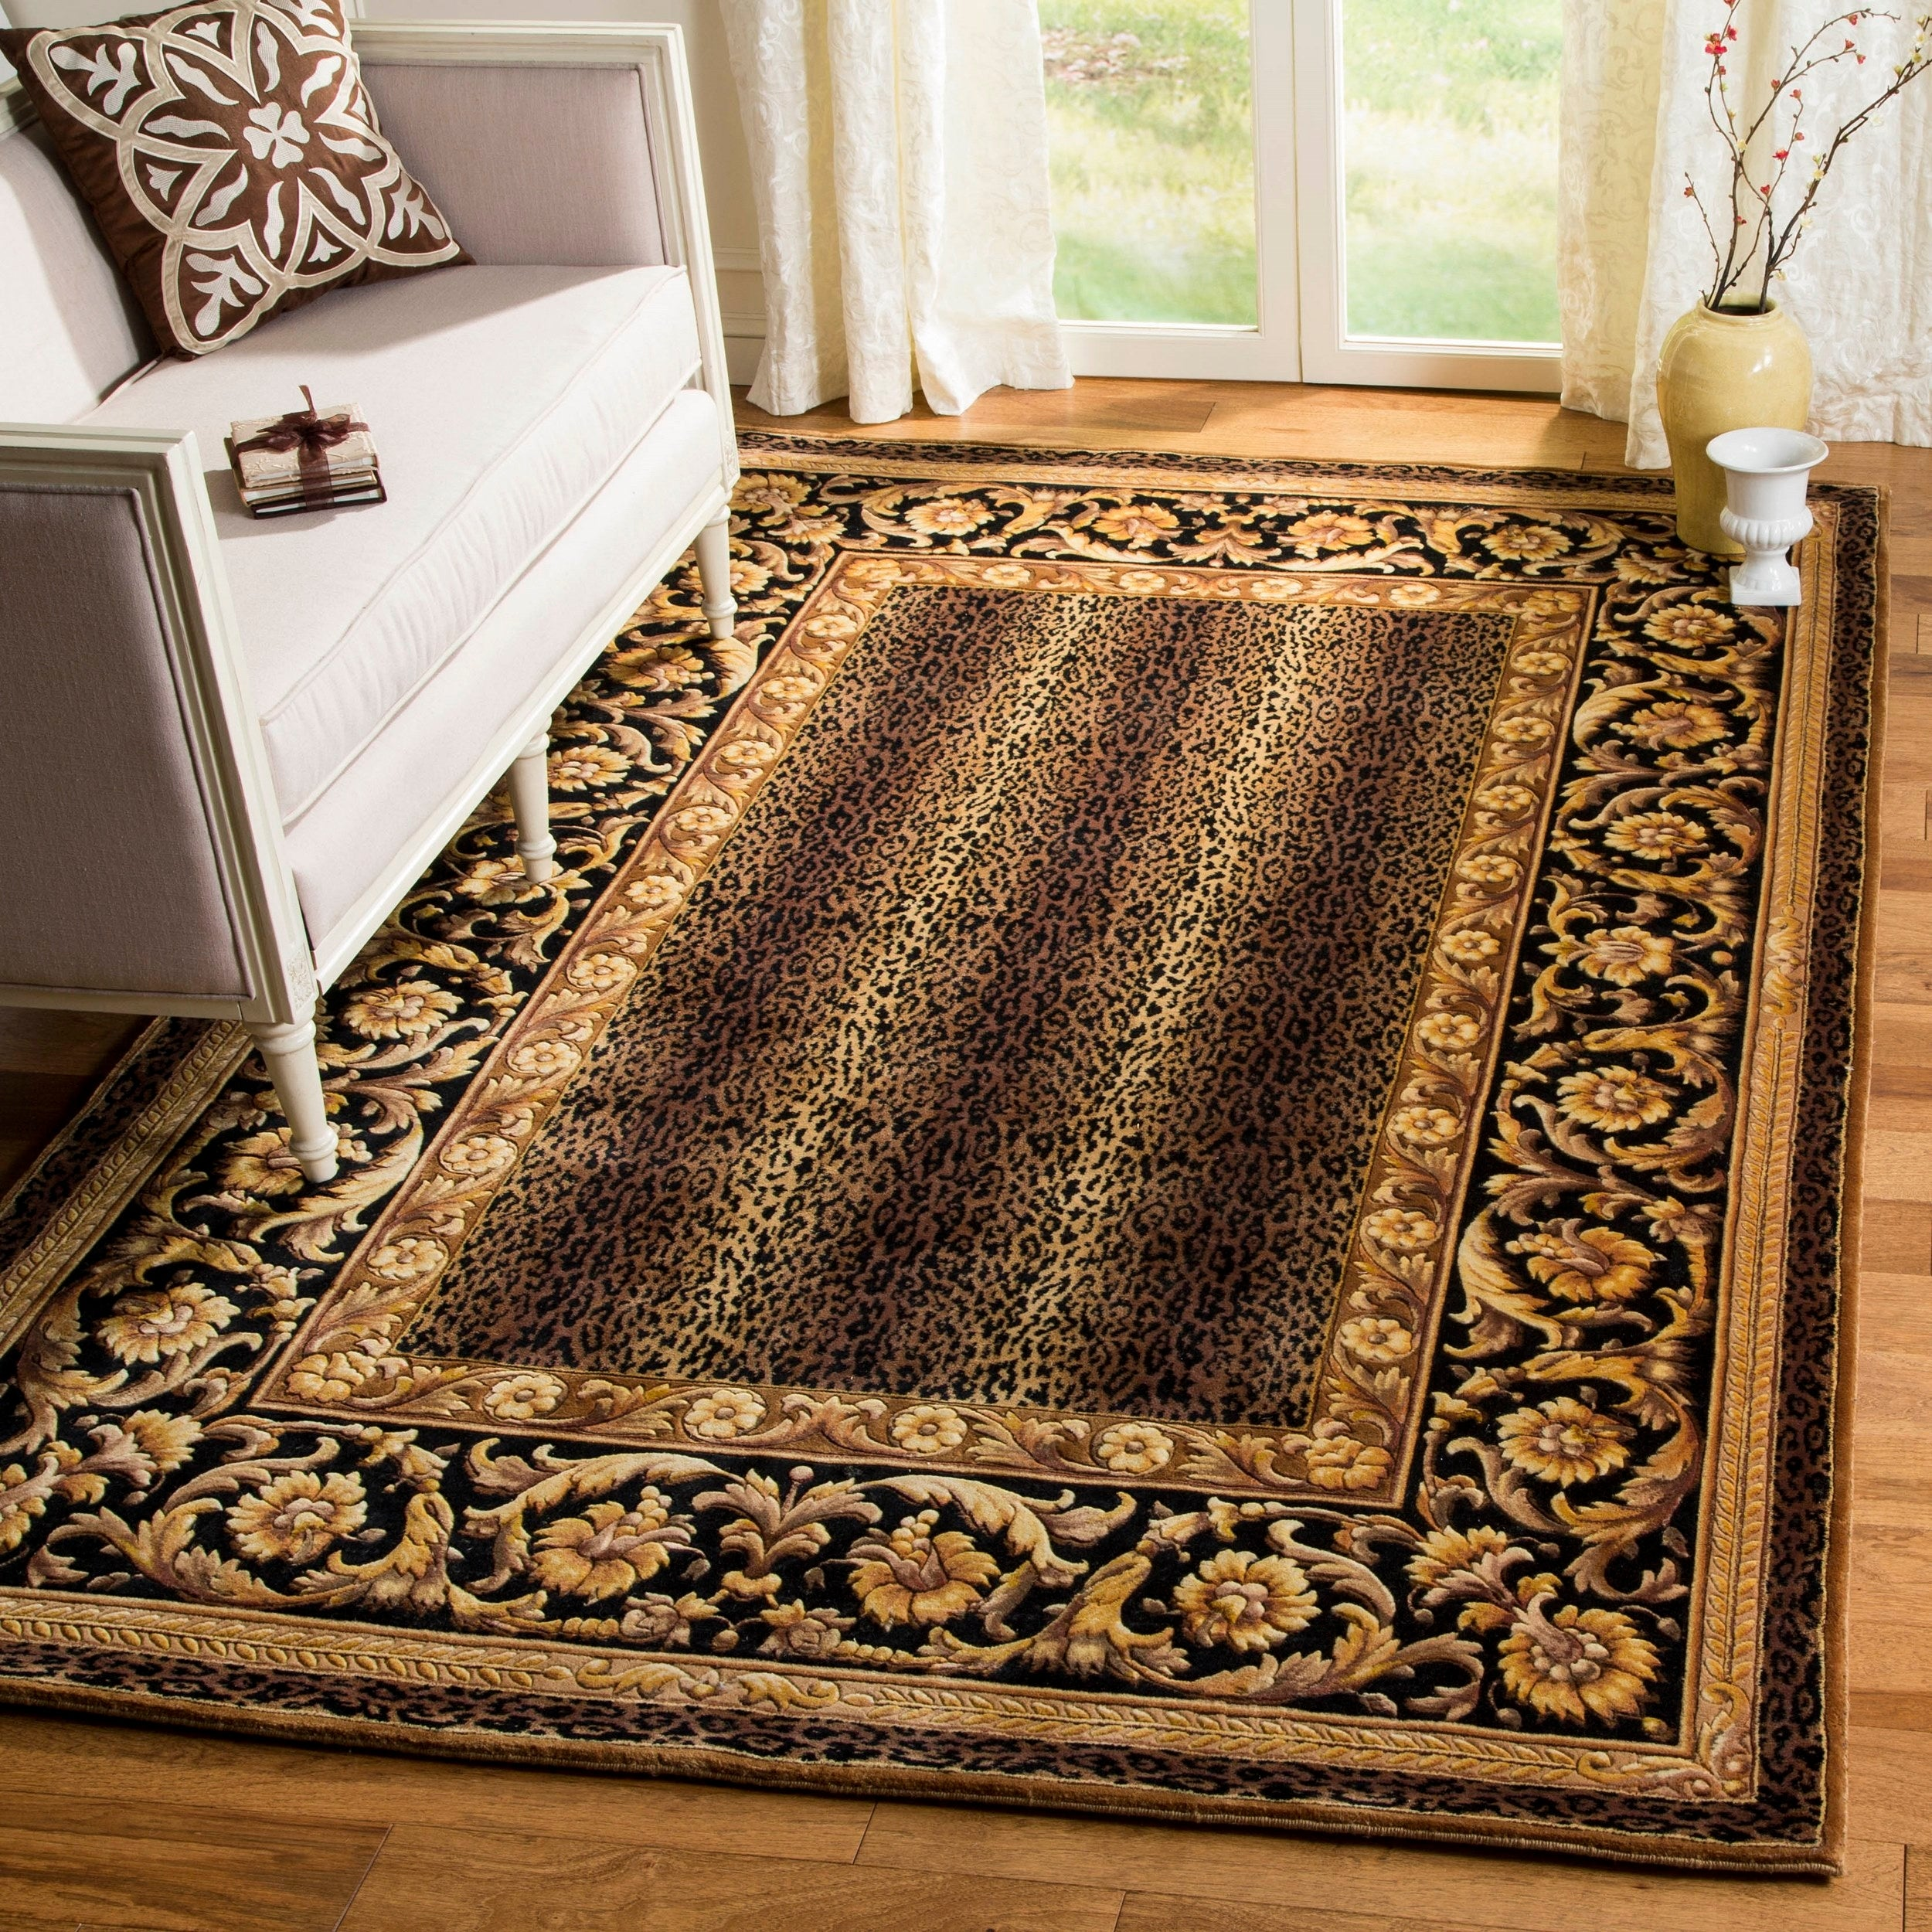 Safavieh Couture Hand Knotted Florence Maricela Traditional Oriental Wool Rug Overstock 23481530